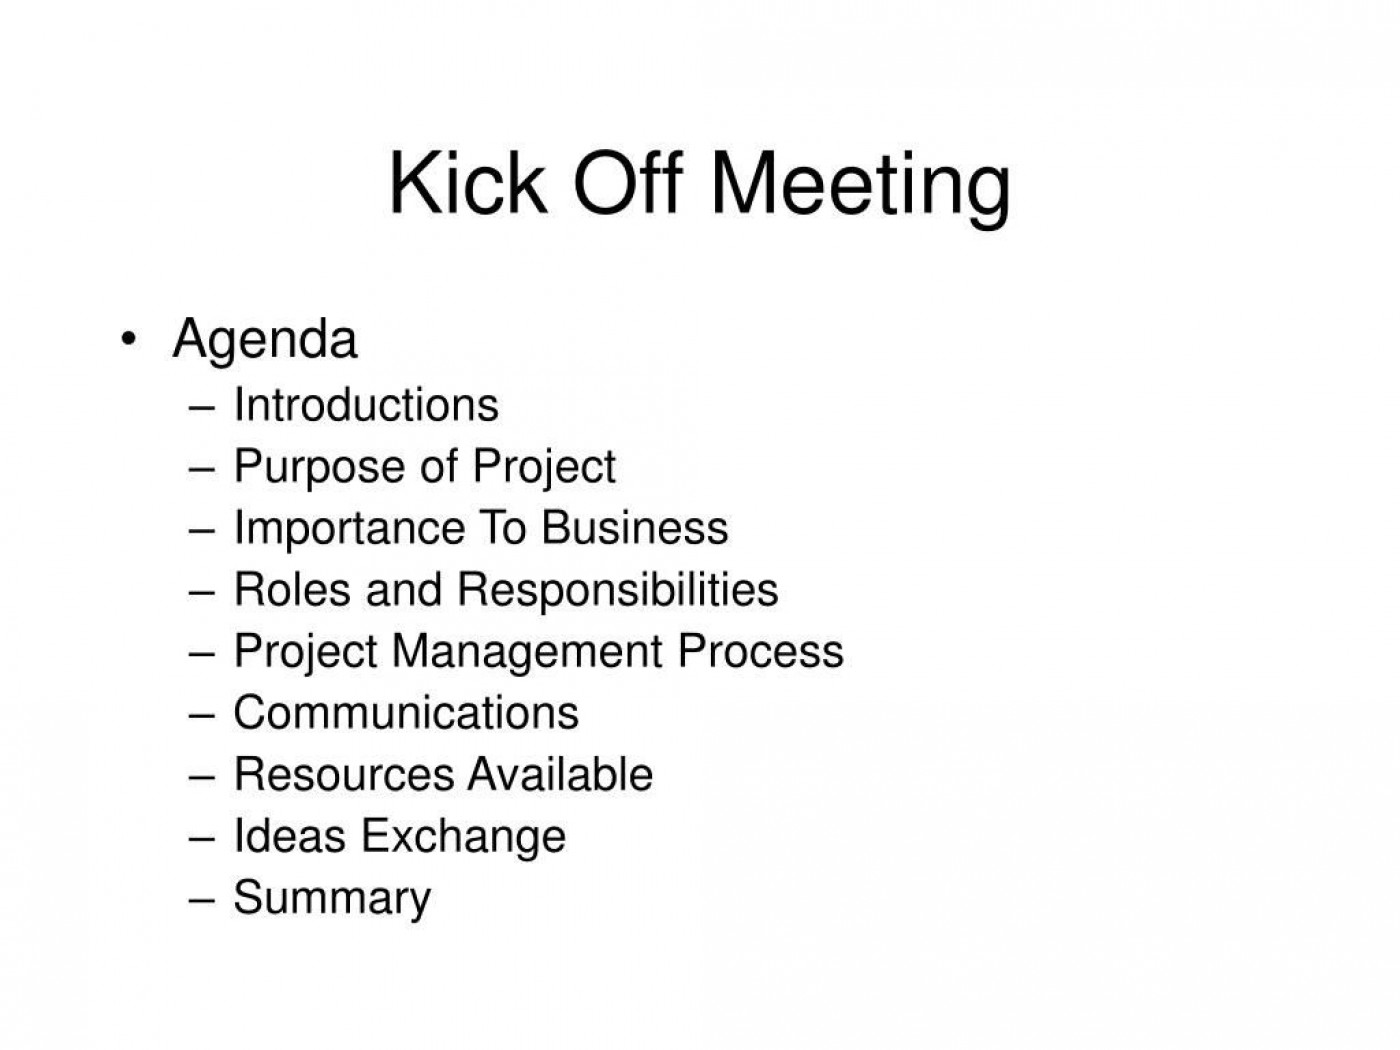 008 Top Project Management Kickoff Meeting Agenda Template Sample 1400